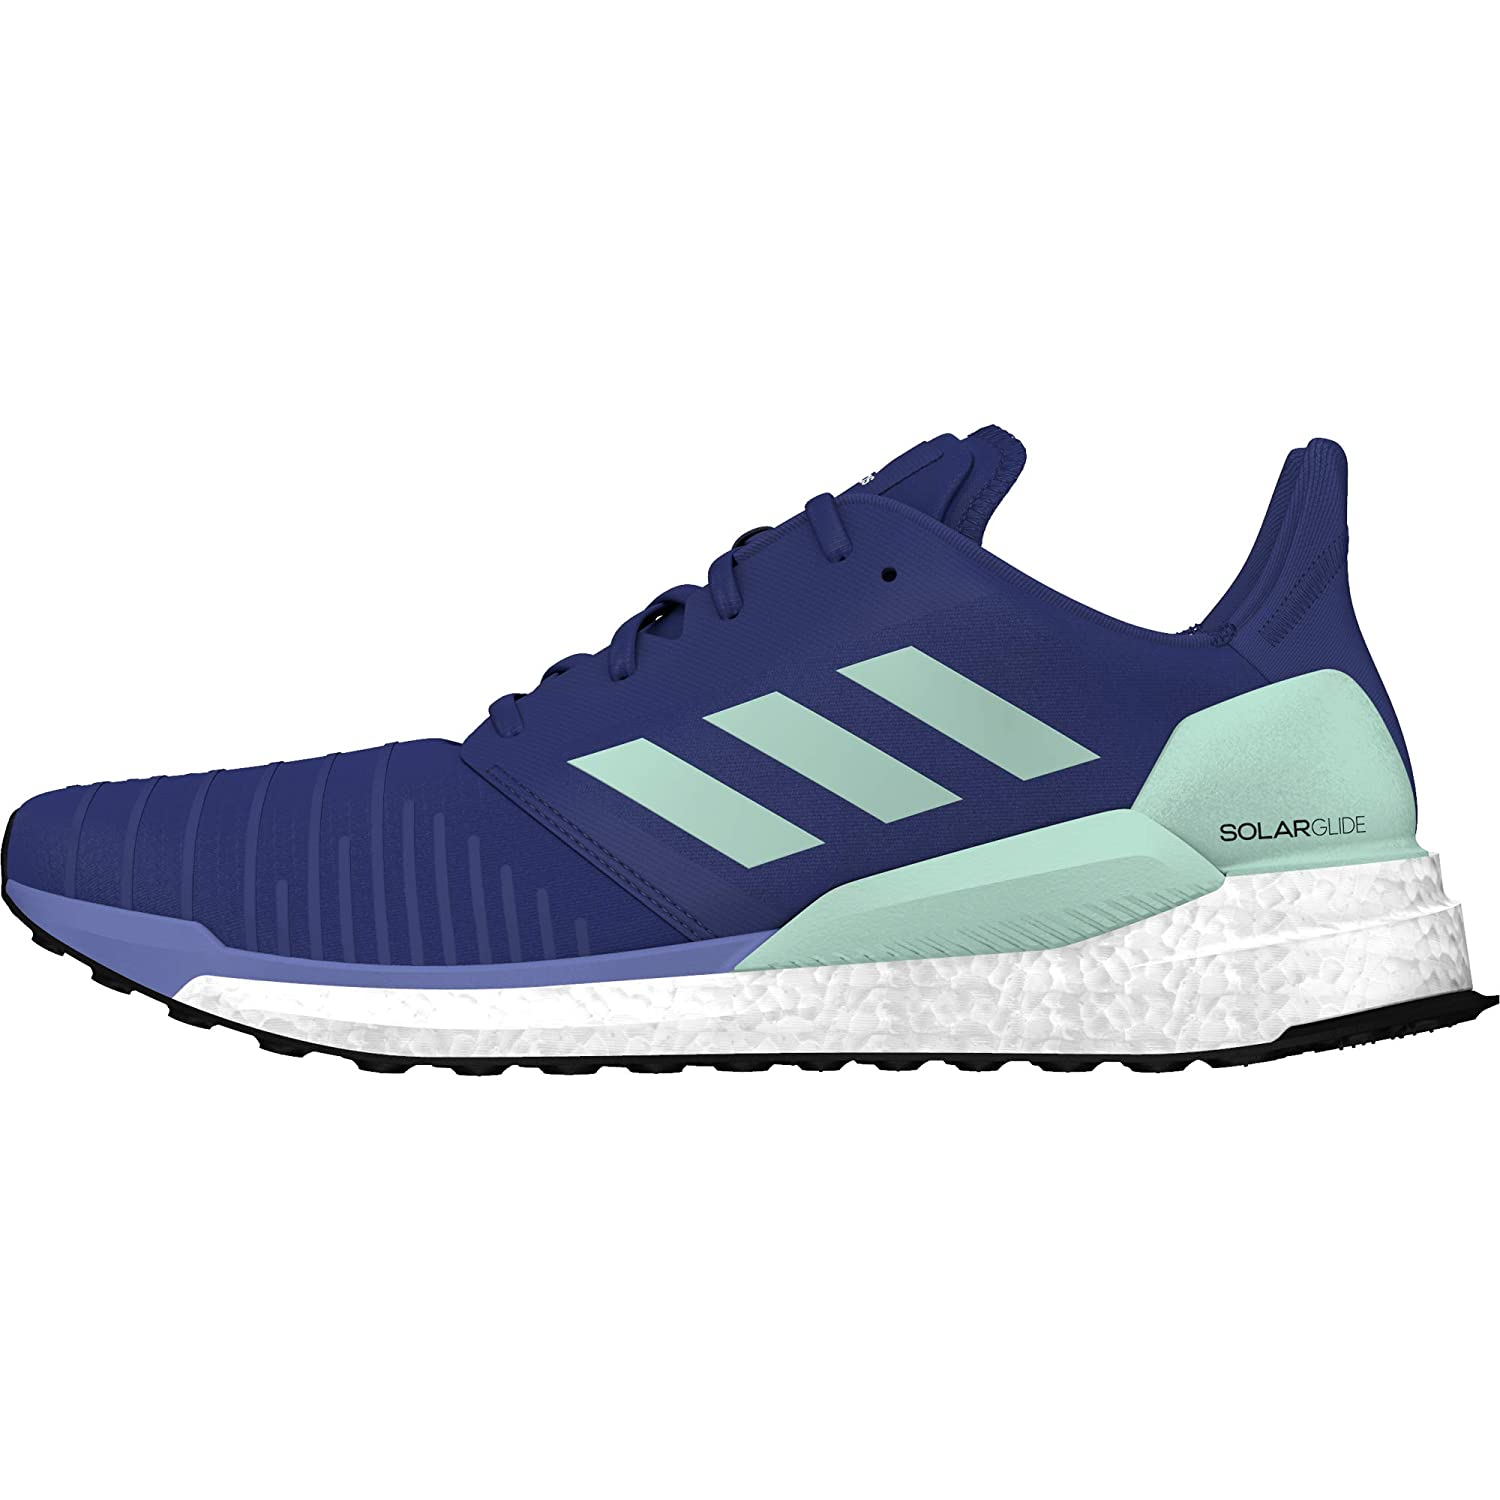 1746712e451e9 adidas Women s Solarboost Training Shoes  Amazon.co.uk  Shoes   Bags